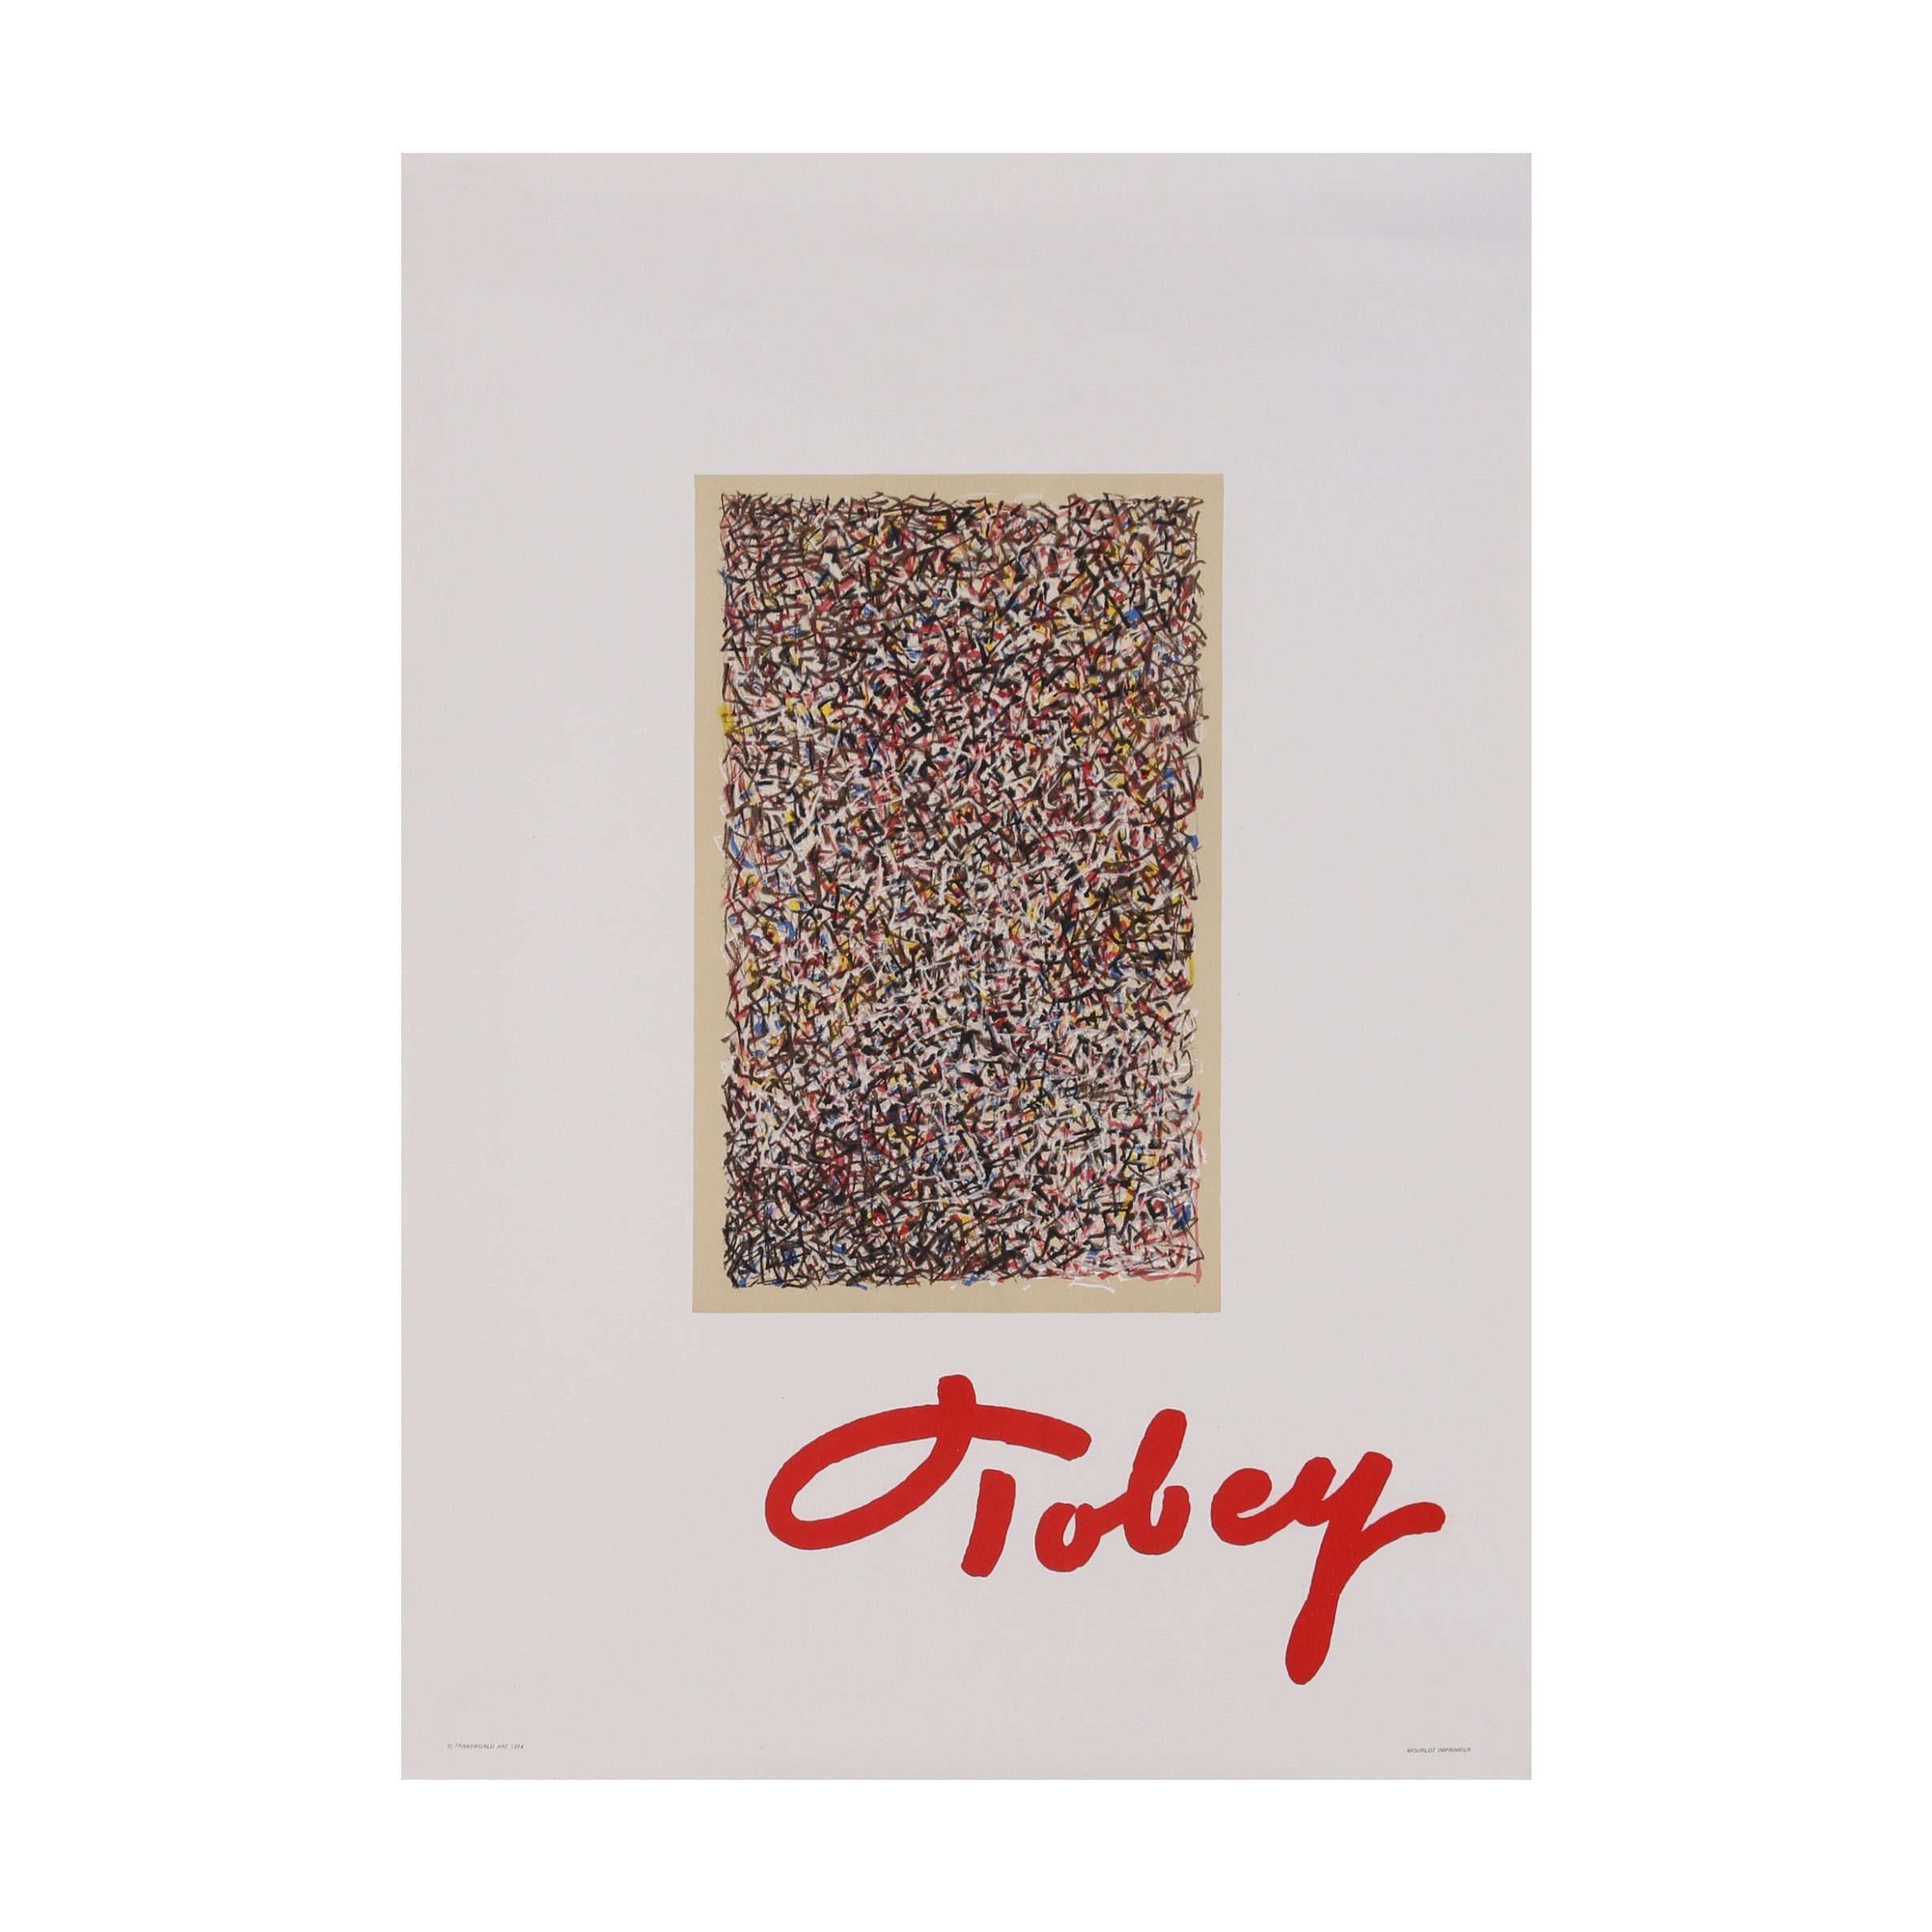 Lithograph Poster after Mark Tobey